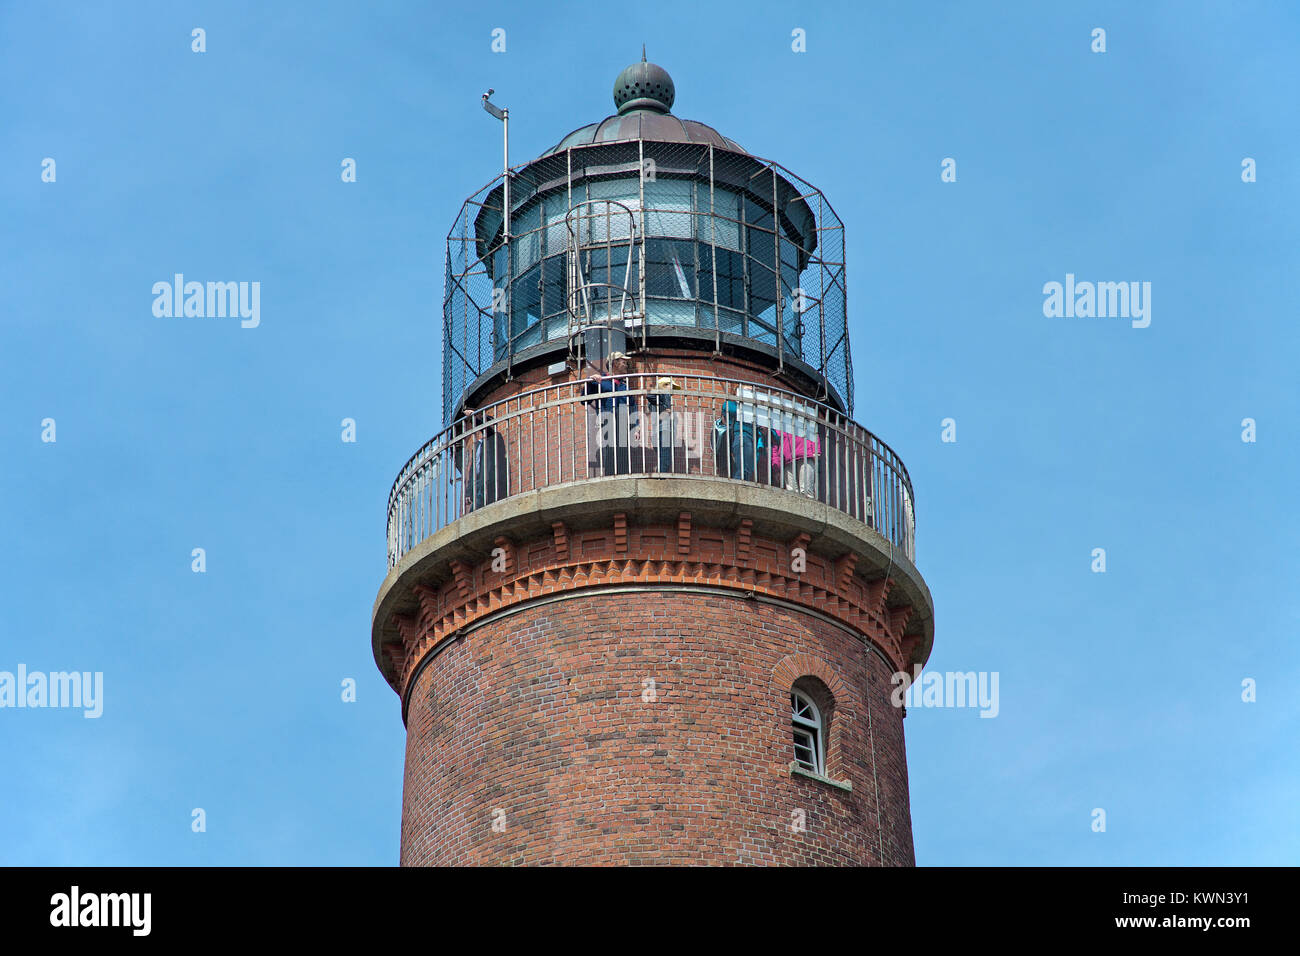 Lighthouse at the 'Darsser Ort', Prerow, Fishland, Mecklenburg-Western Pomerania, Baltic sea, Germany, Europe - Stock Image